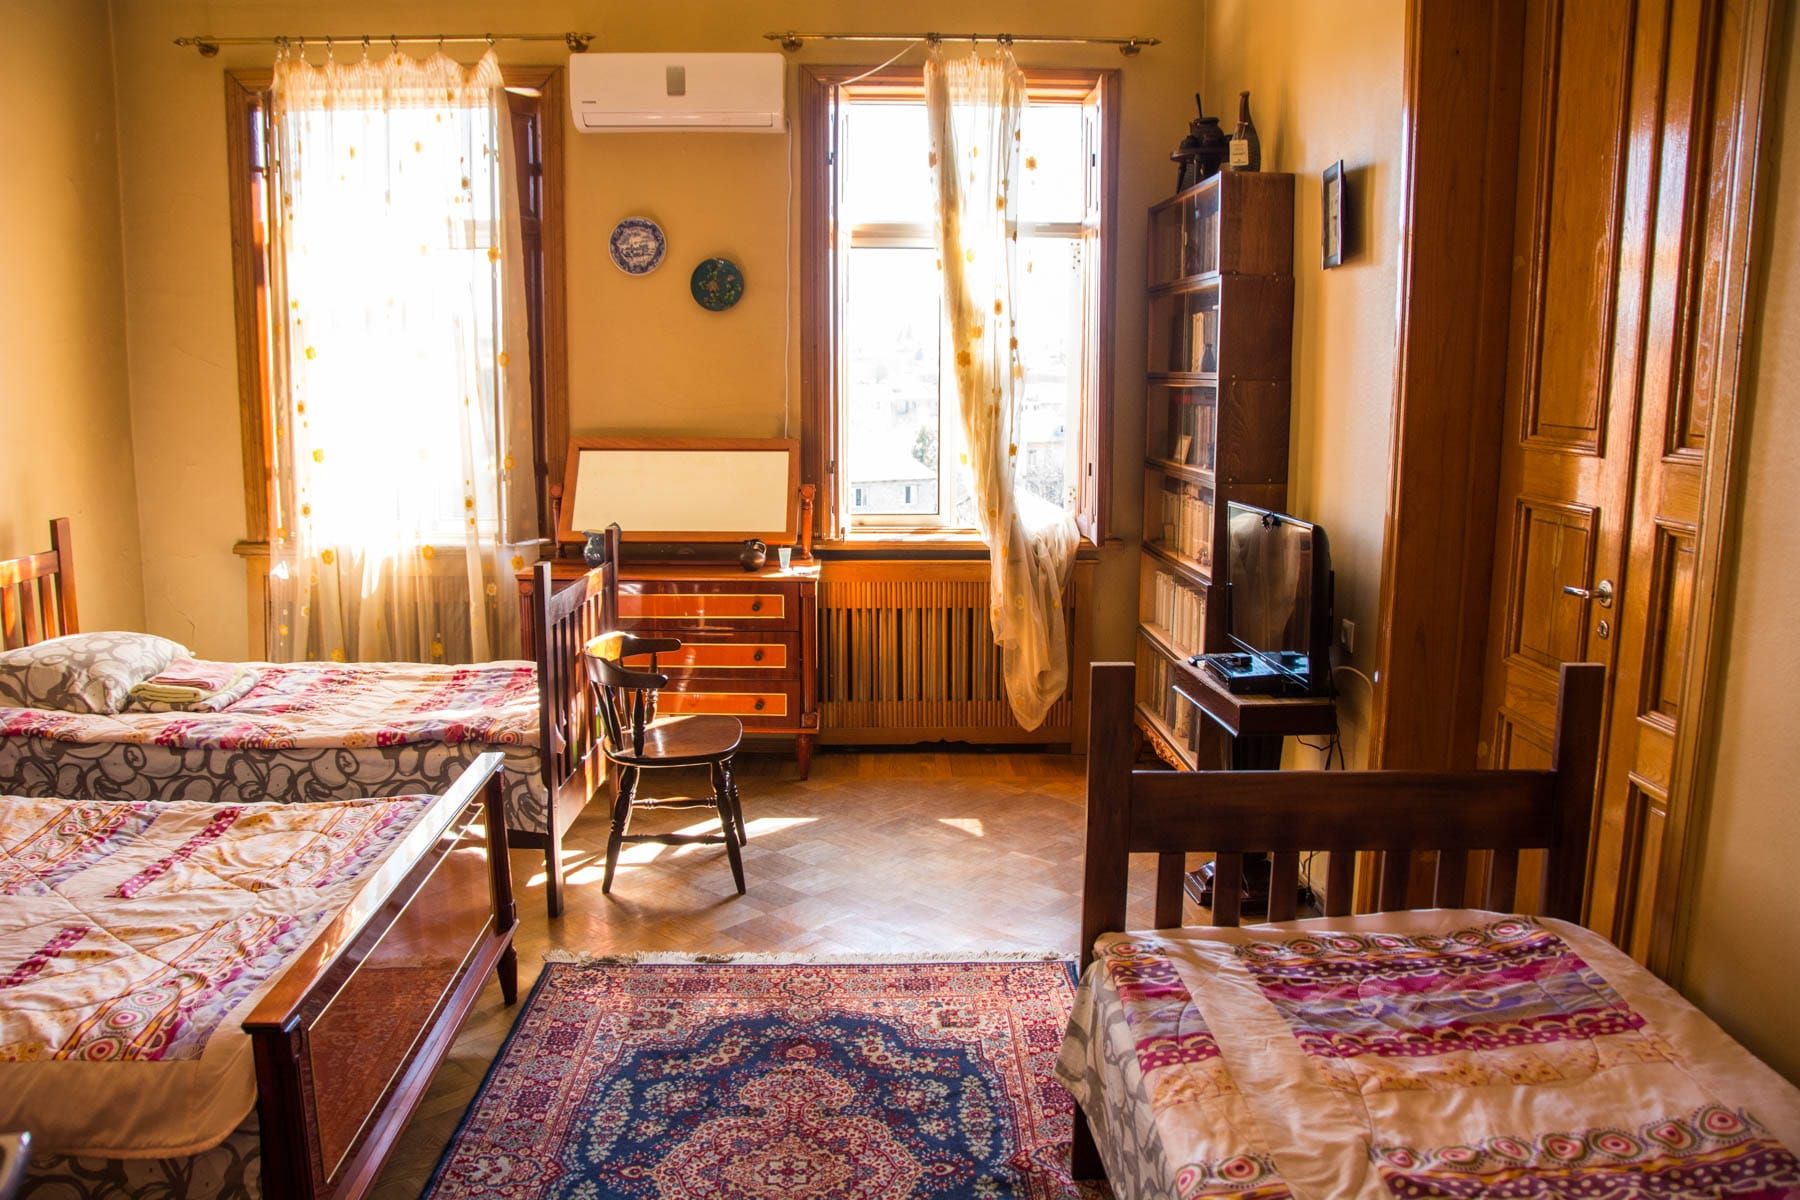 Interior of a room at Sun Hostel Guesthouse in Kutaisi, Georgia